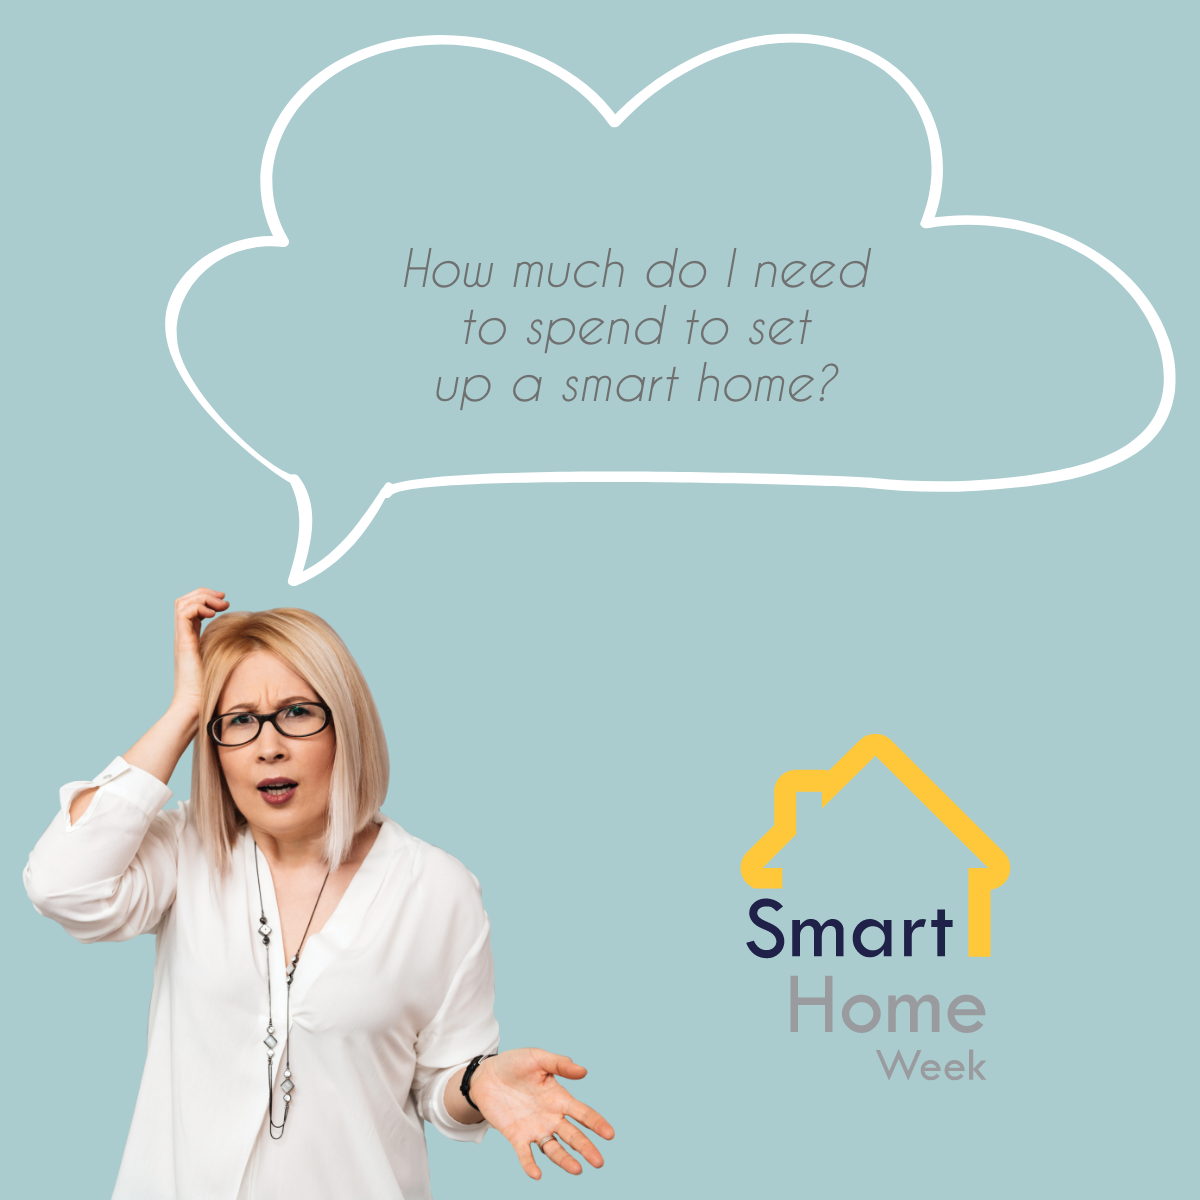 woman looking confused with a speech bubble saying how much do i need to spend to set up a smart home